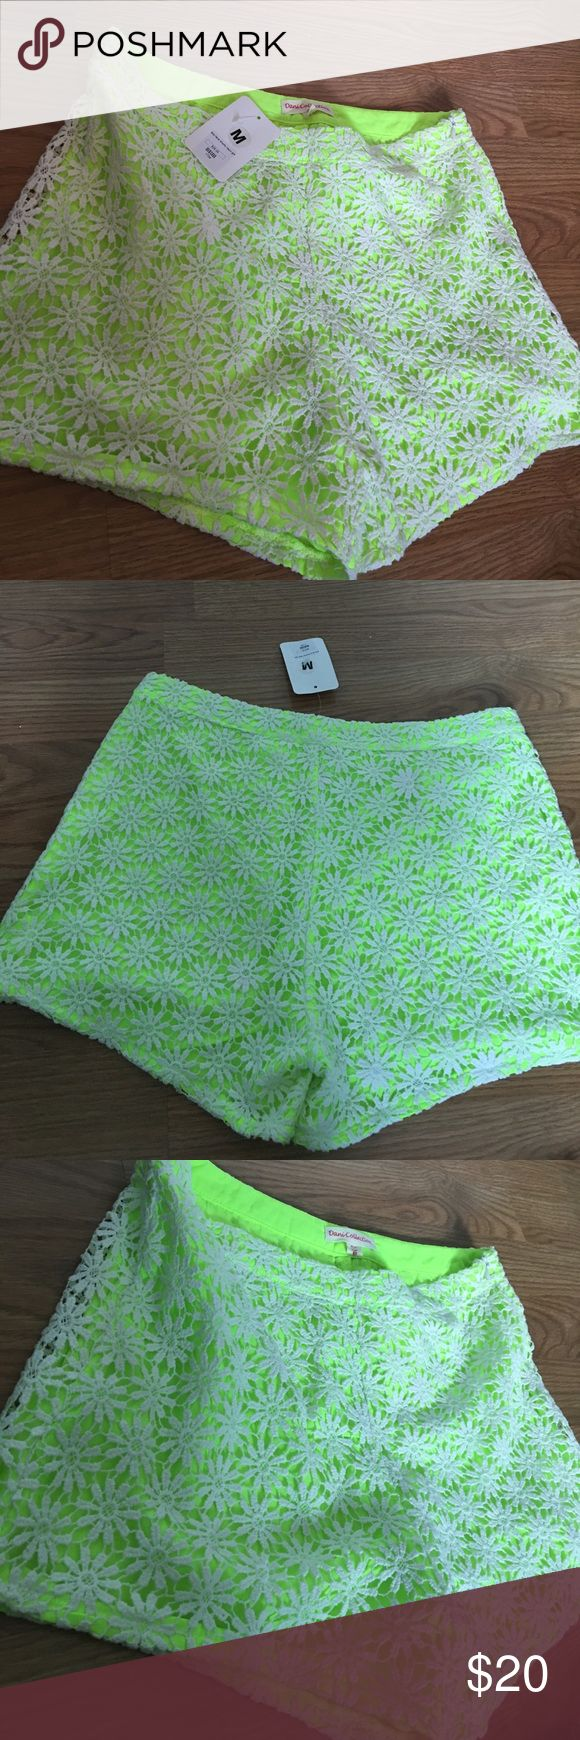 Brand new floral high/mid waist shorts Lime green shorts with floral lace overlay never worn dani collection Shorts